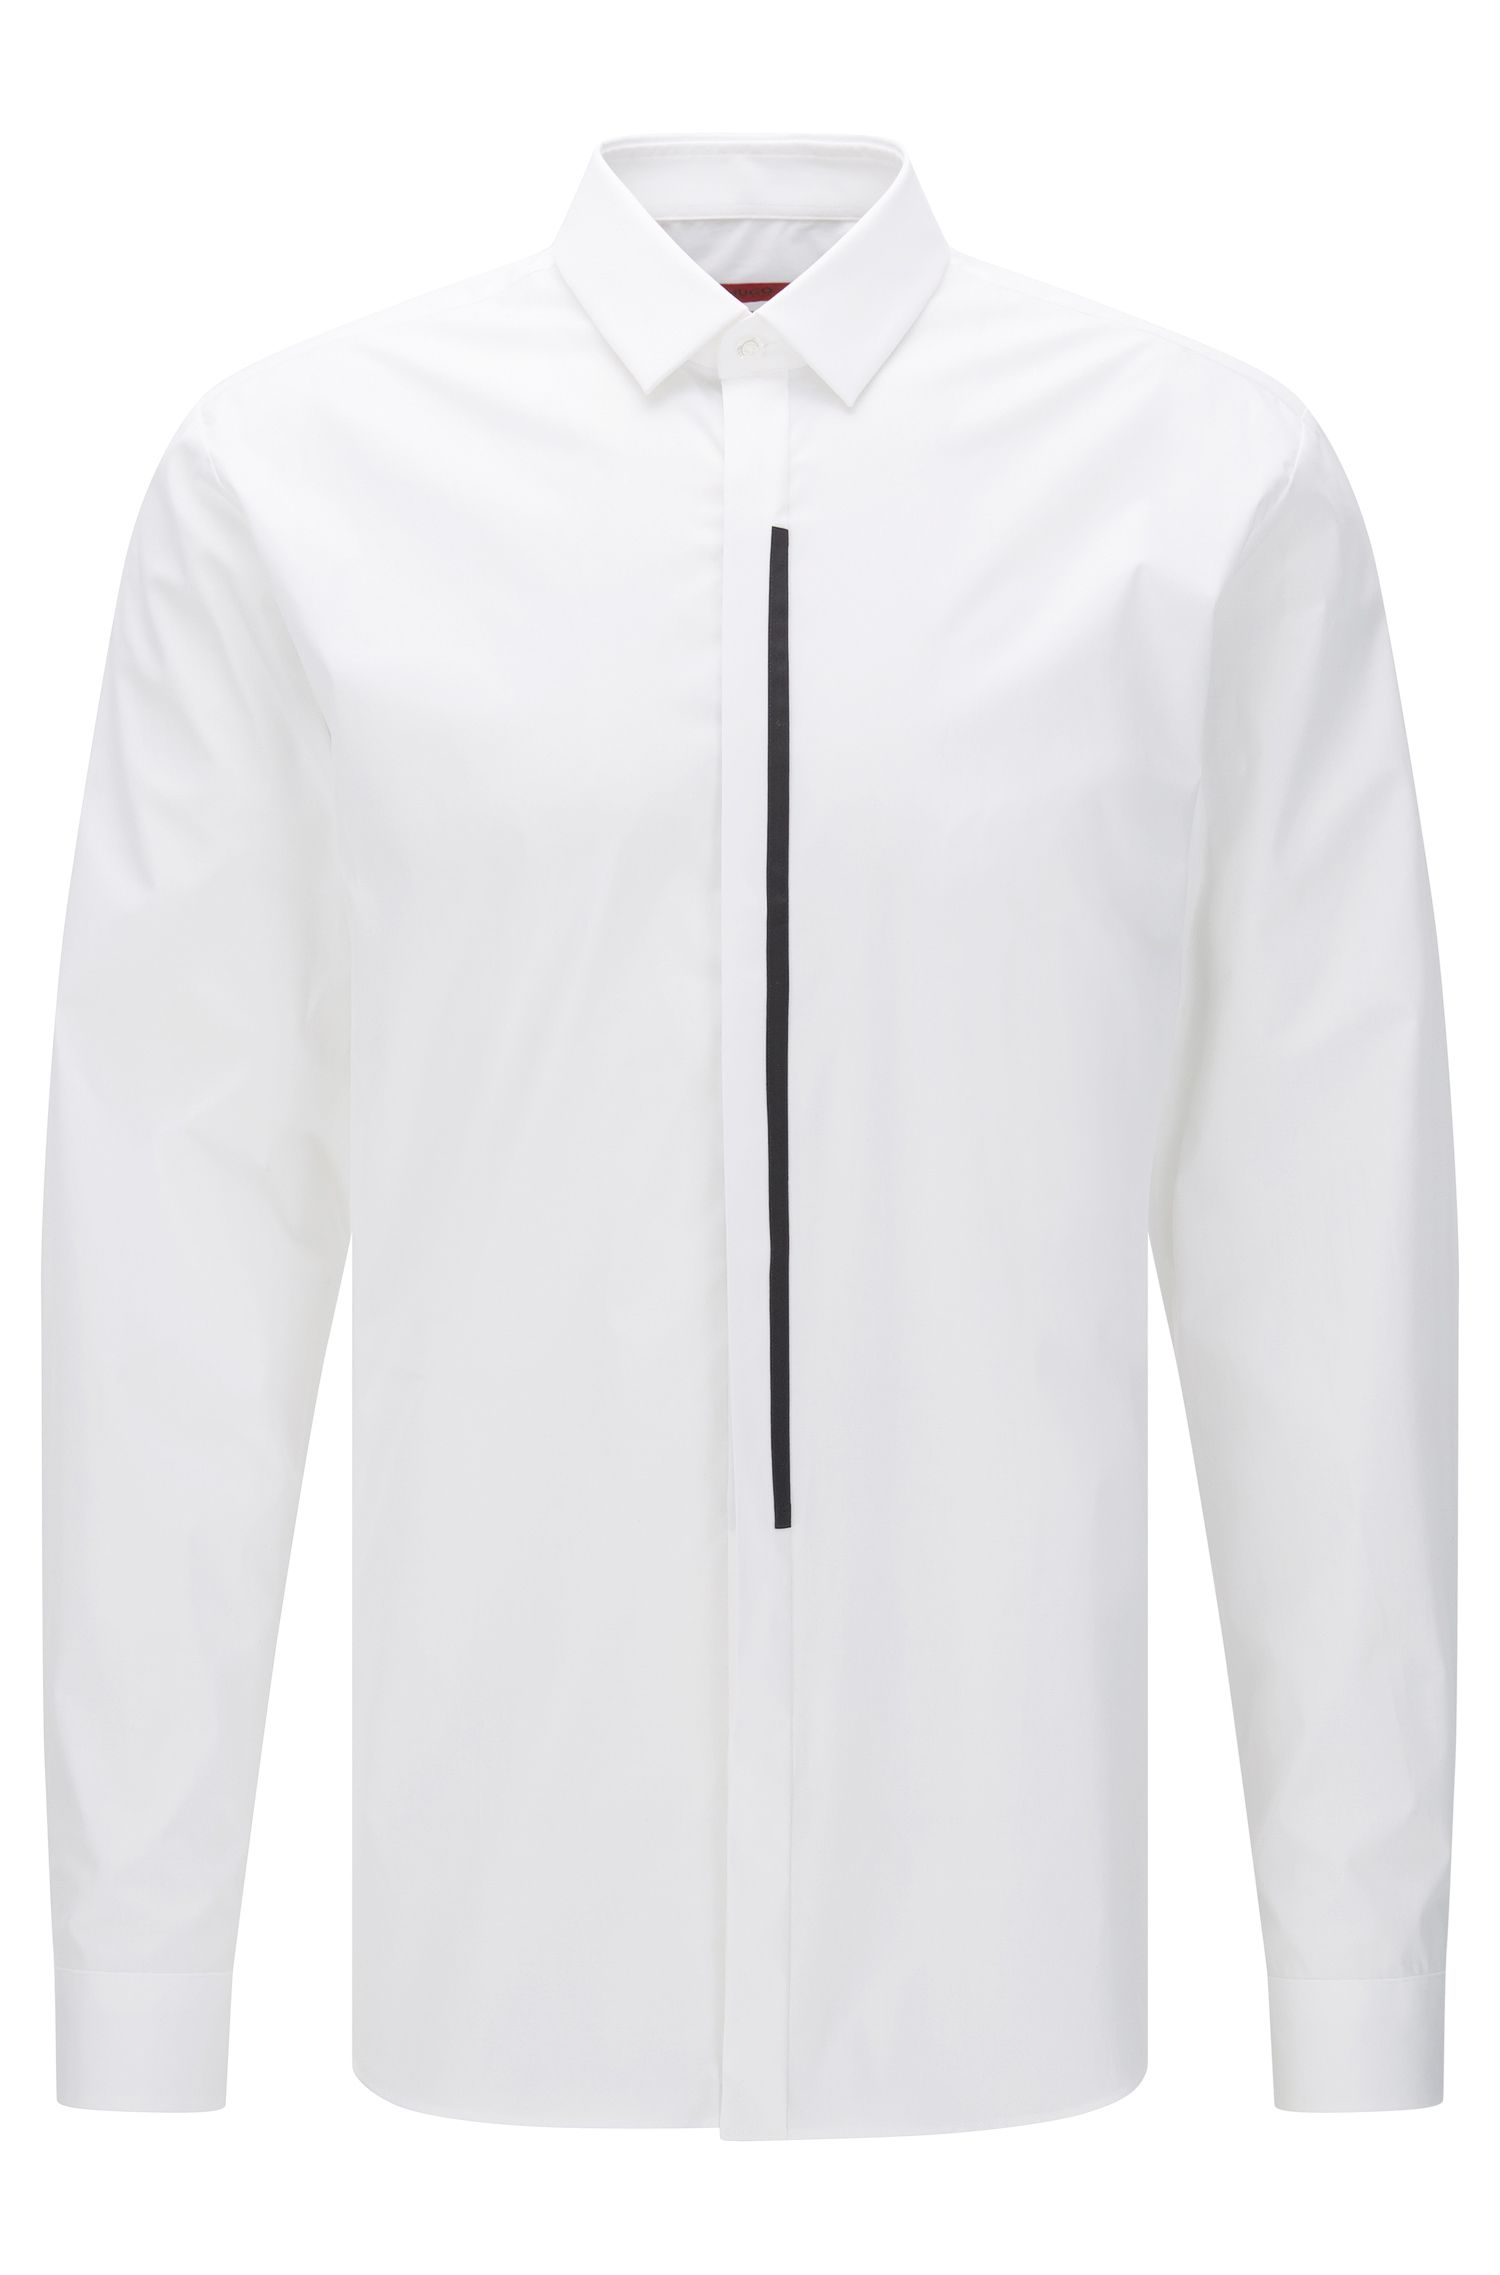 'Emac'   Extra Slim Fit, Stretch Cotton Button Down Shirt